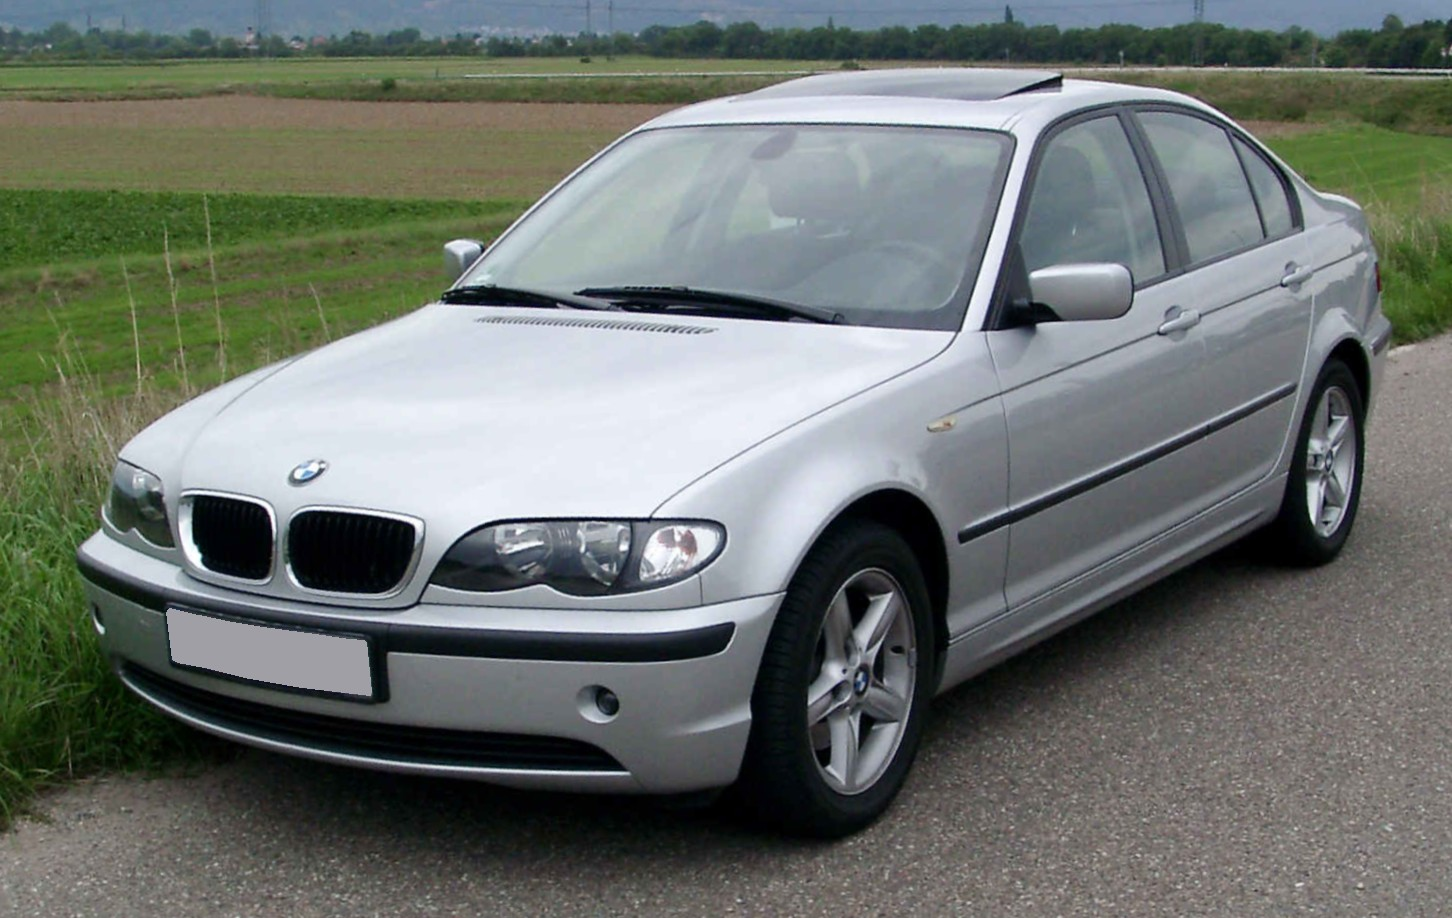 Description BMW E46 front 20080822.jpg